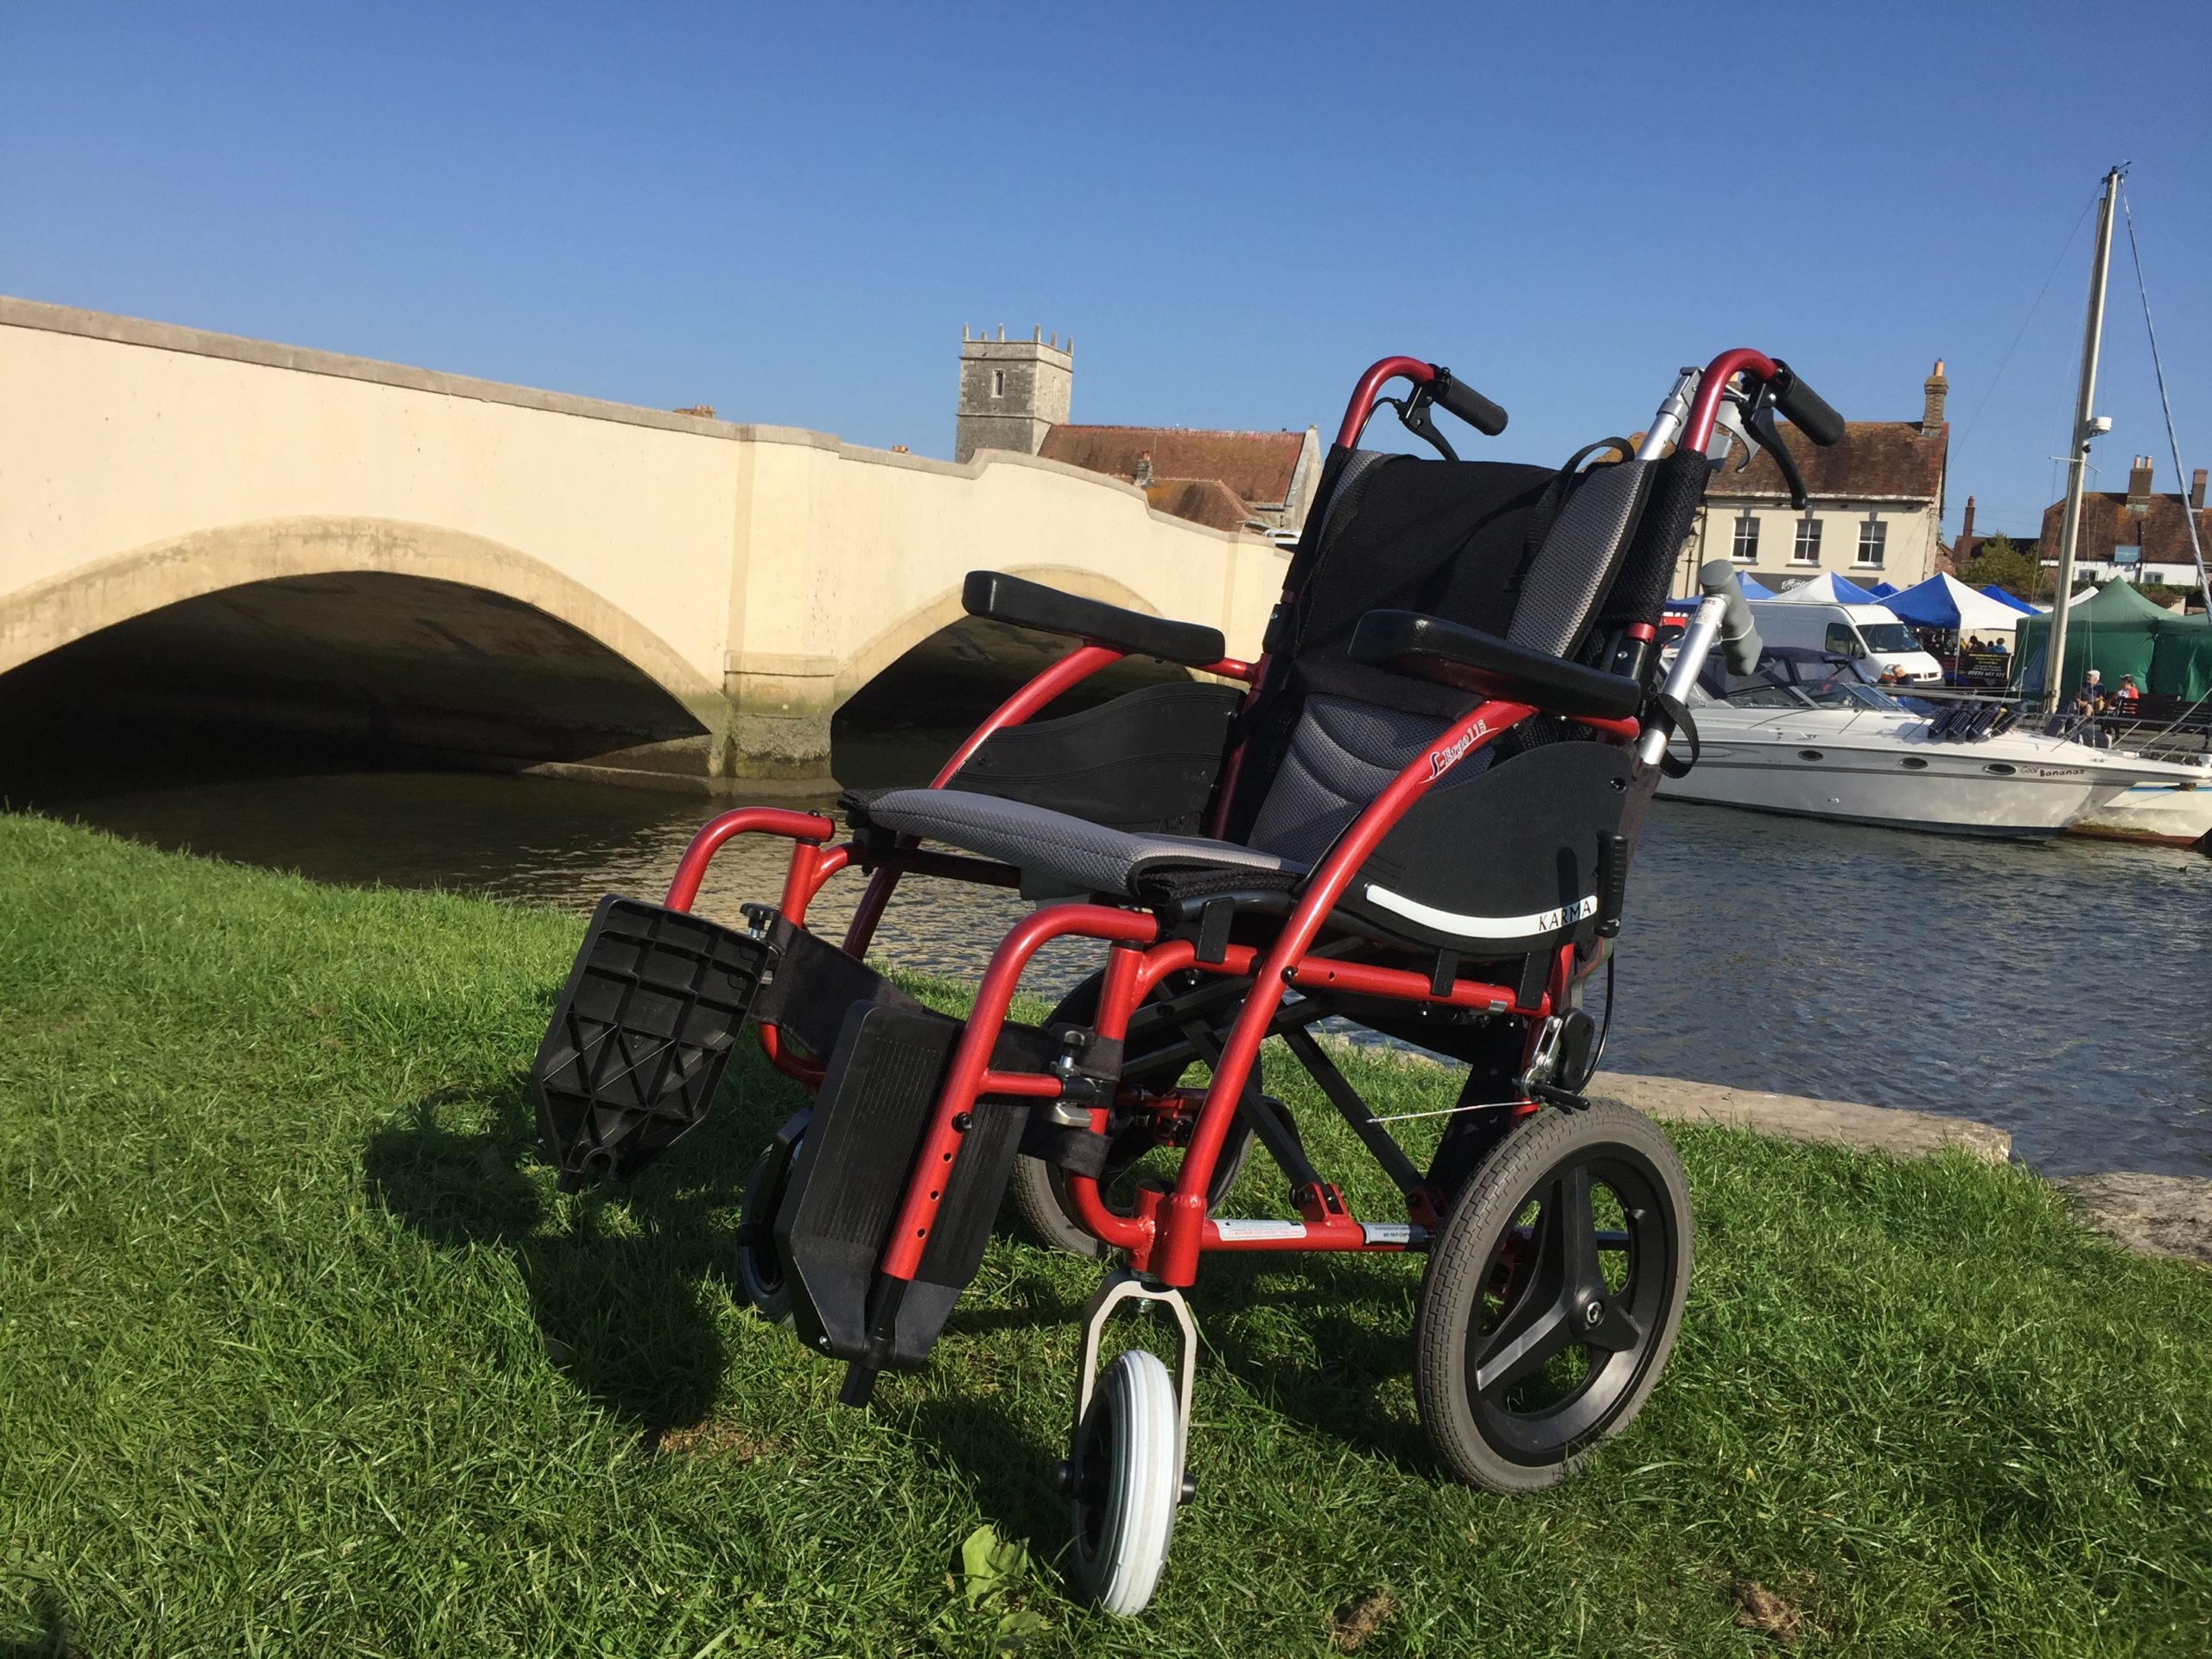 Wheelchair Hire in Swanage, Wareham, Bere Regis, Lytchett Matravers, Wool, Winfrith